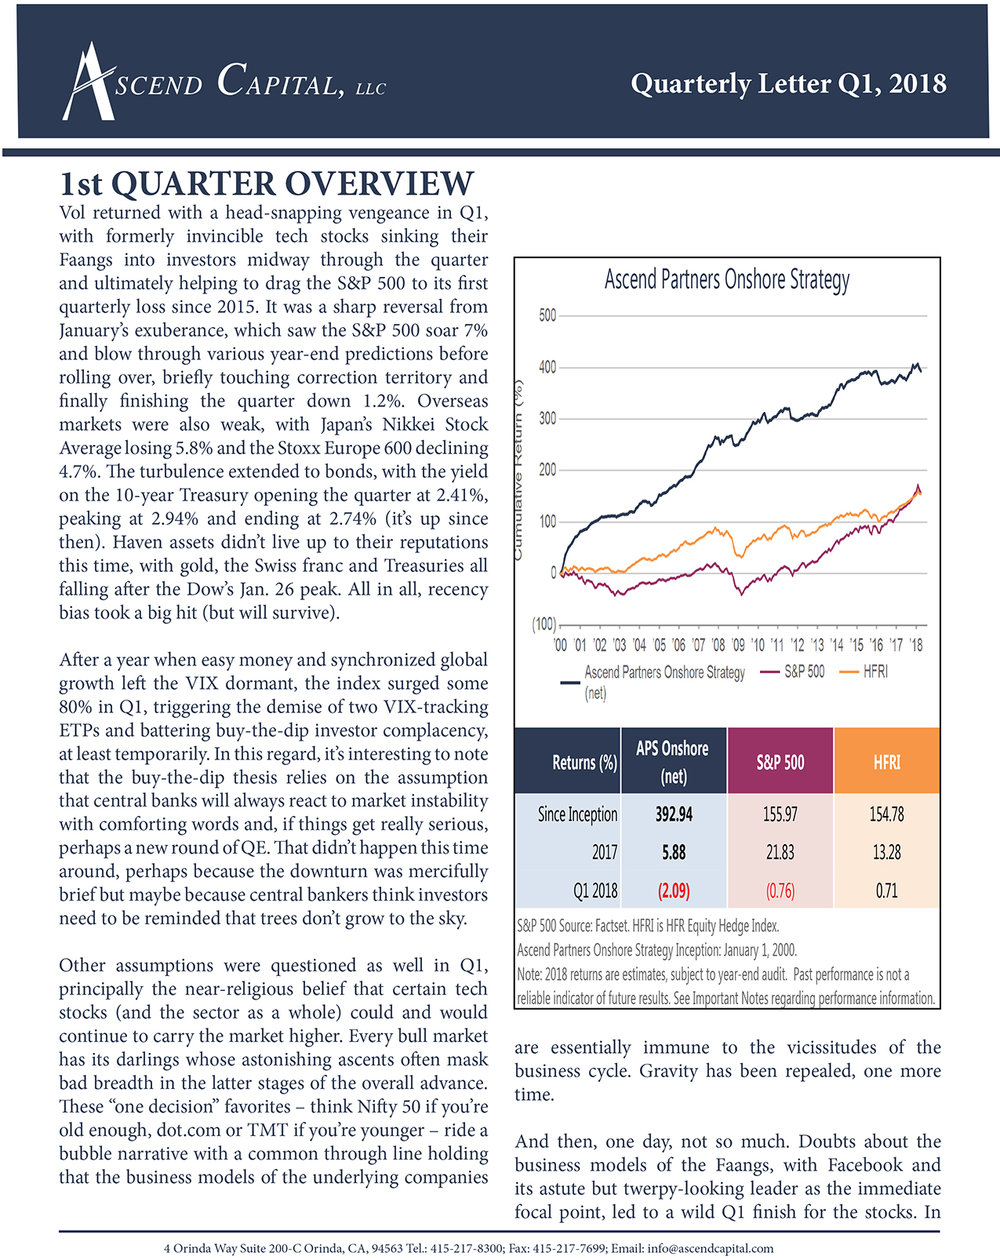 Ascend Capital Quarterly Letter Q1 2018-1.jpg